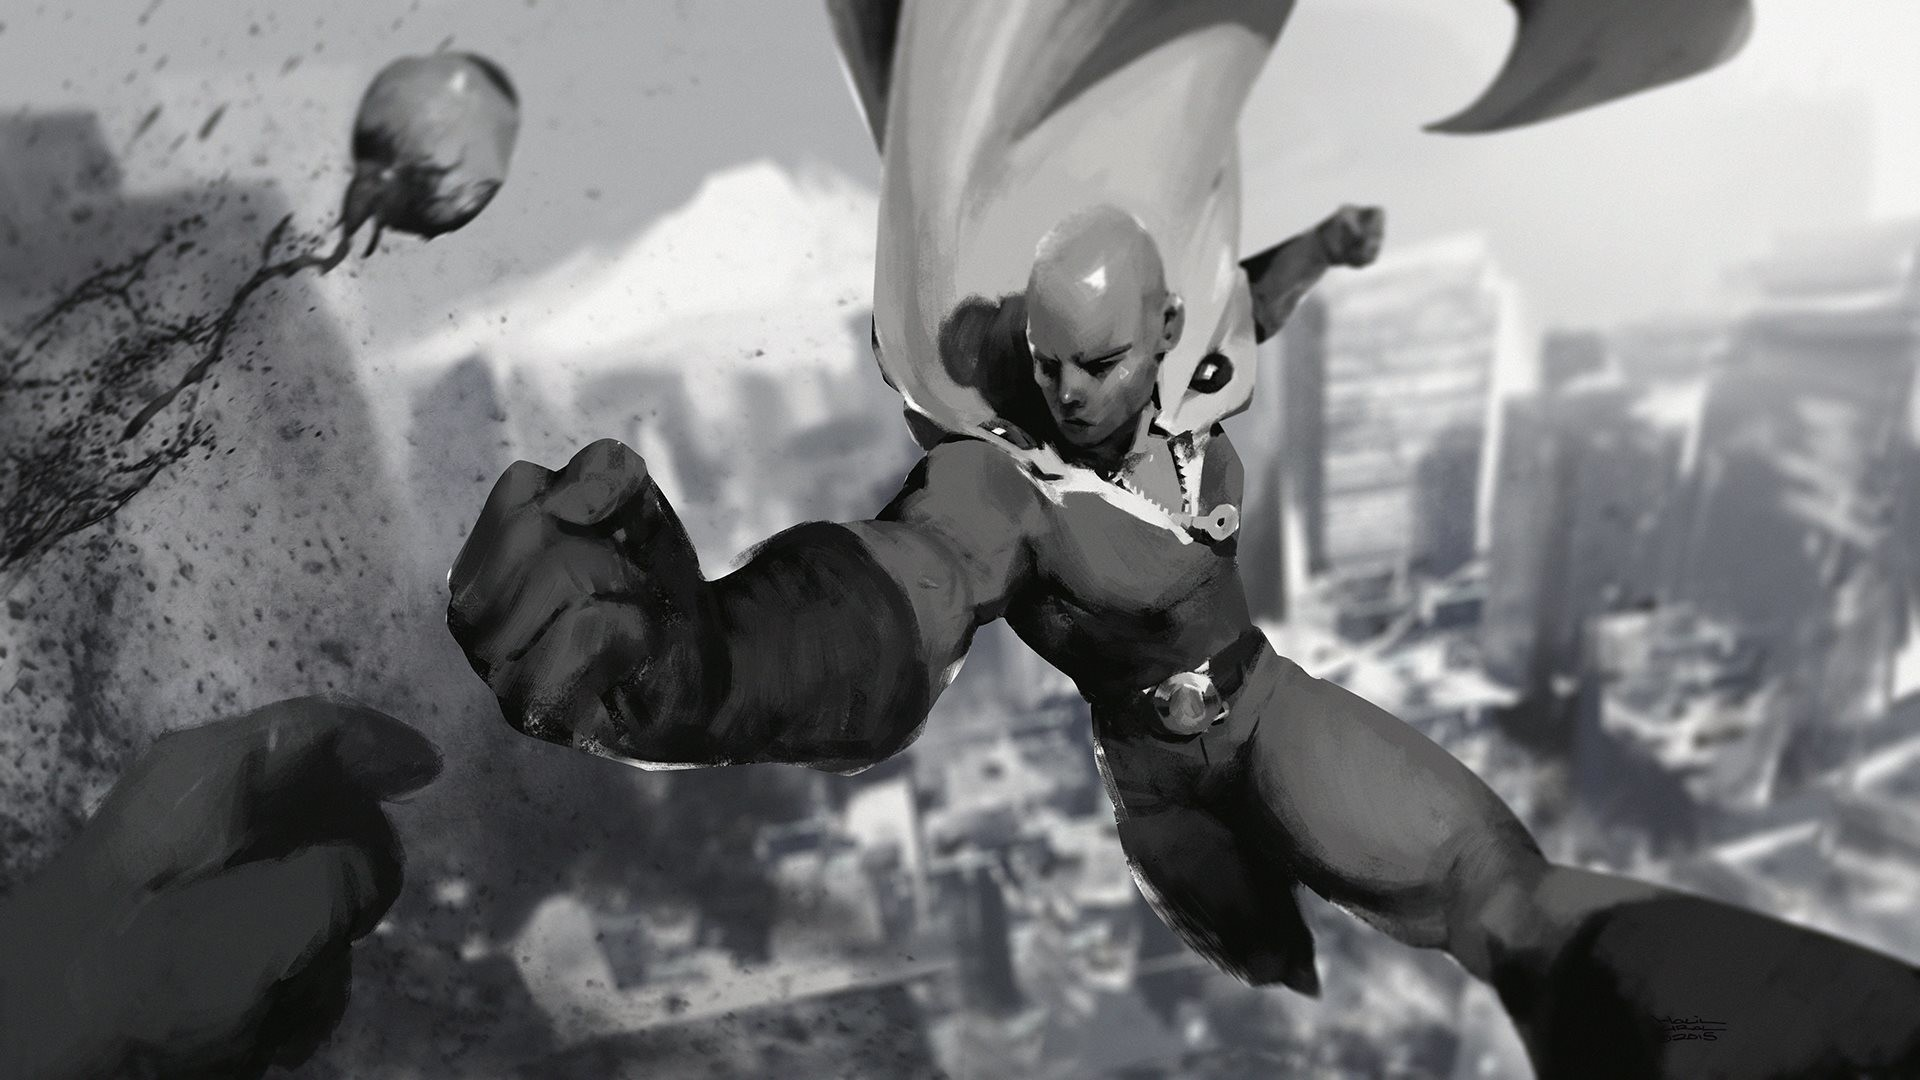 one punch man wallpaper 1920×1080 images (12)